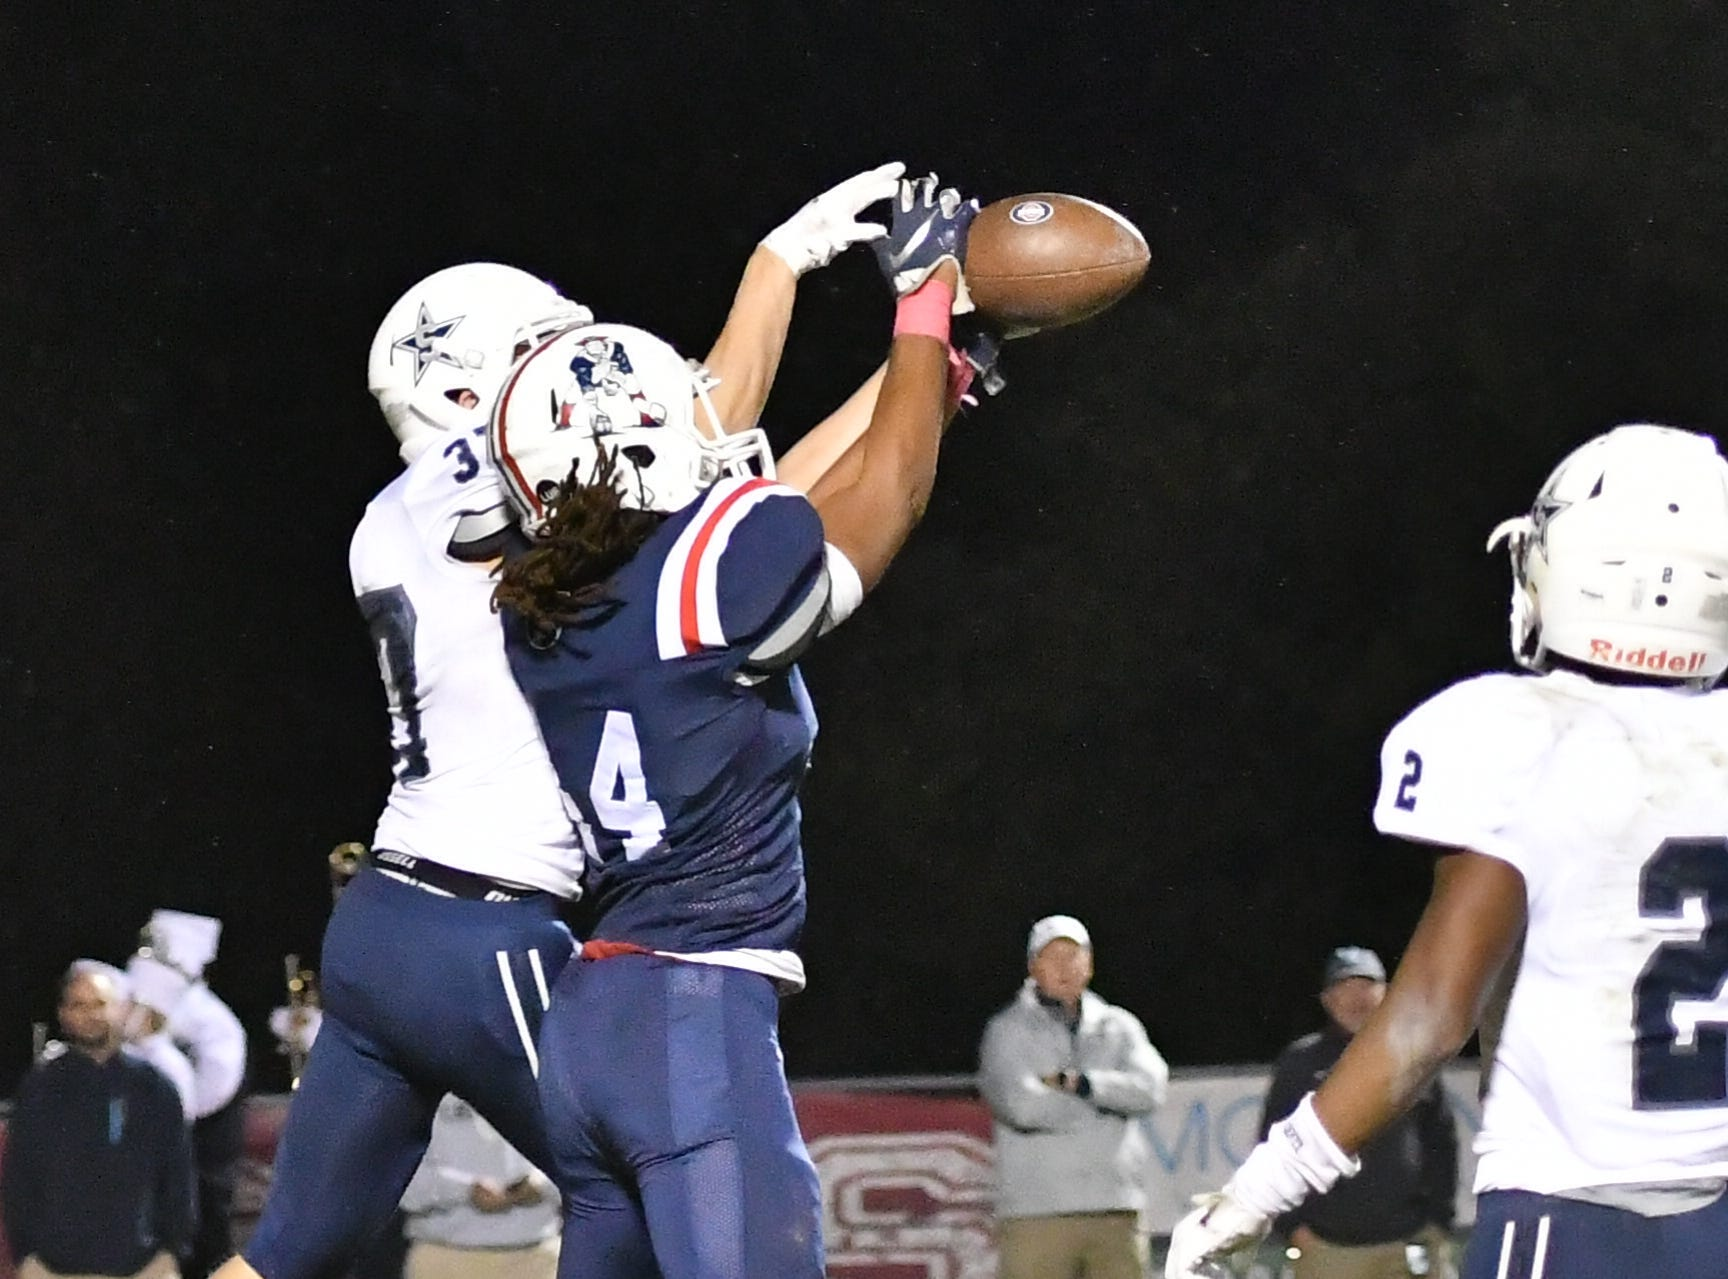 Oakland's Mikhael Holman goes up for a pass Friday night against Siegel.